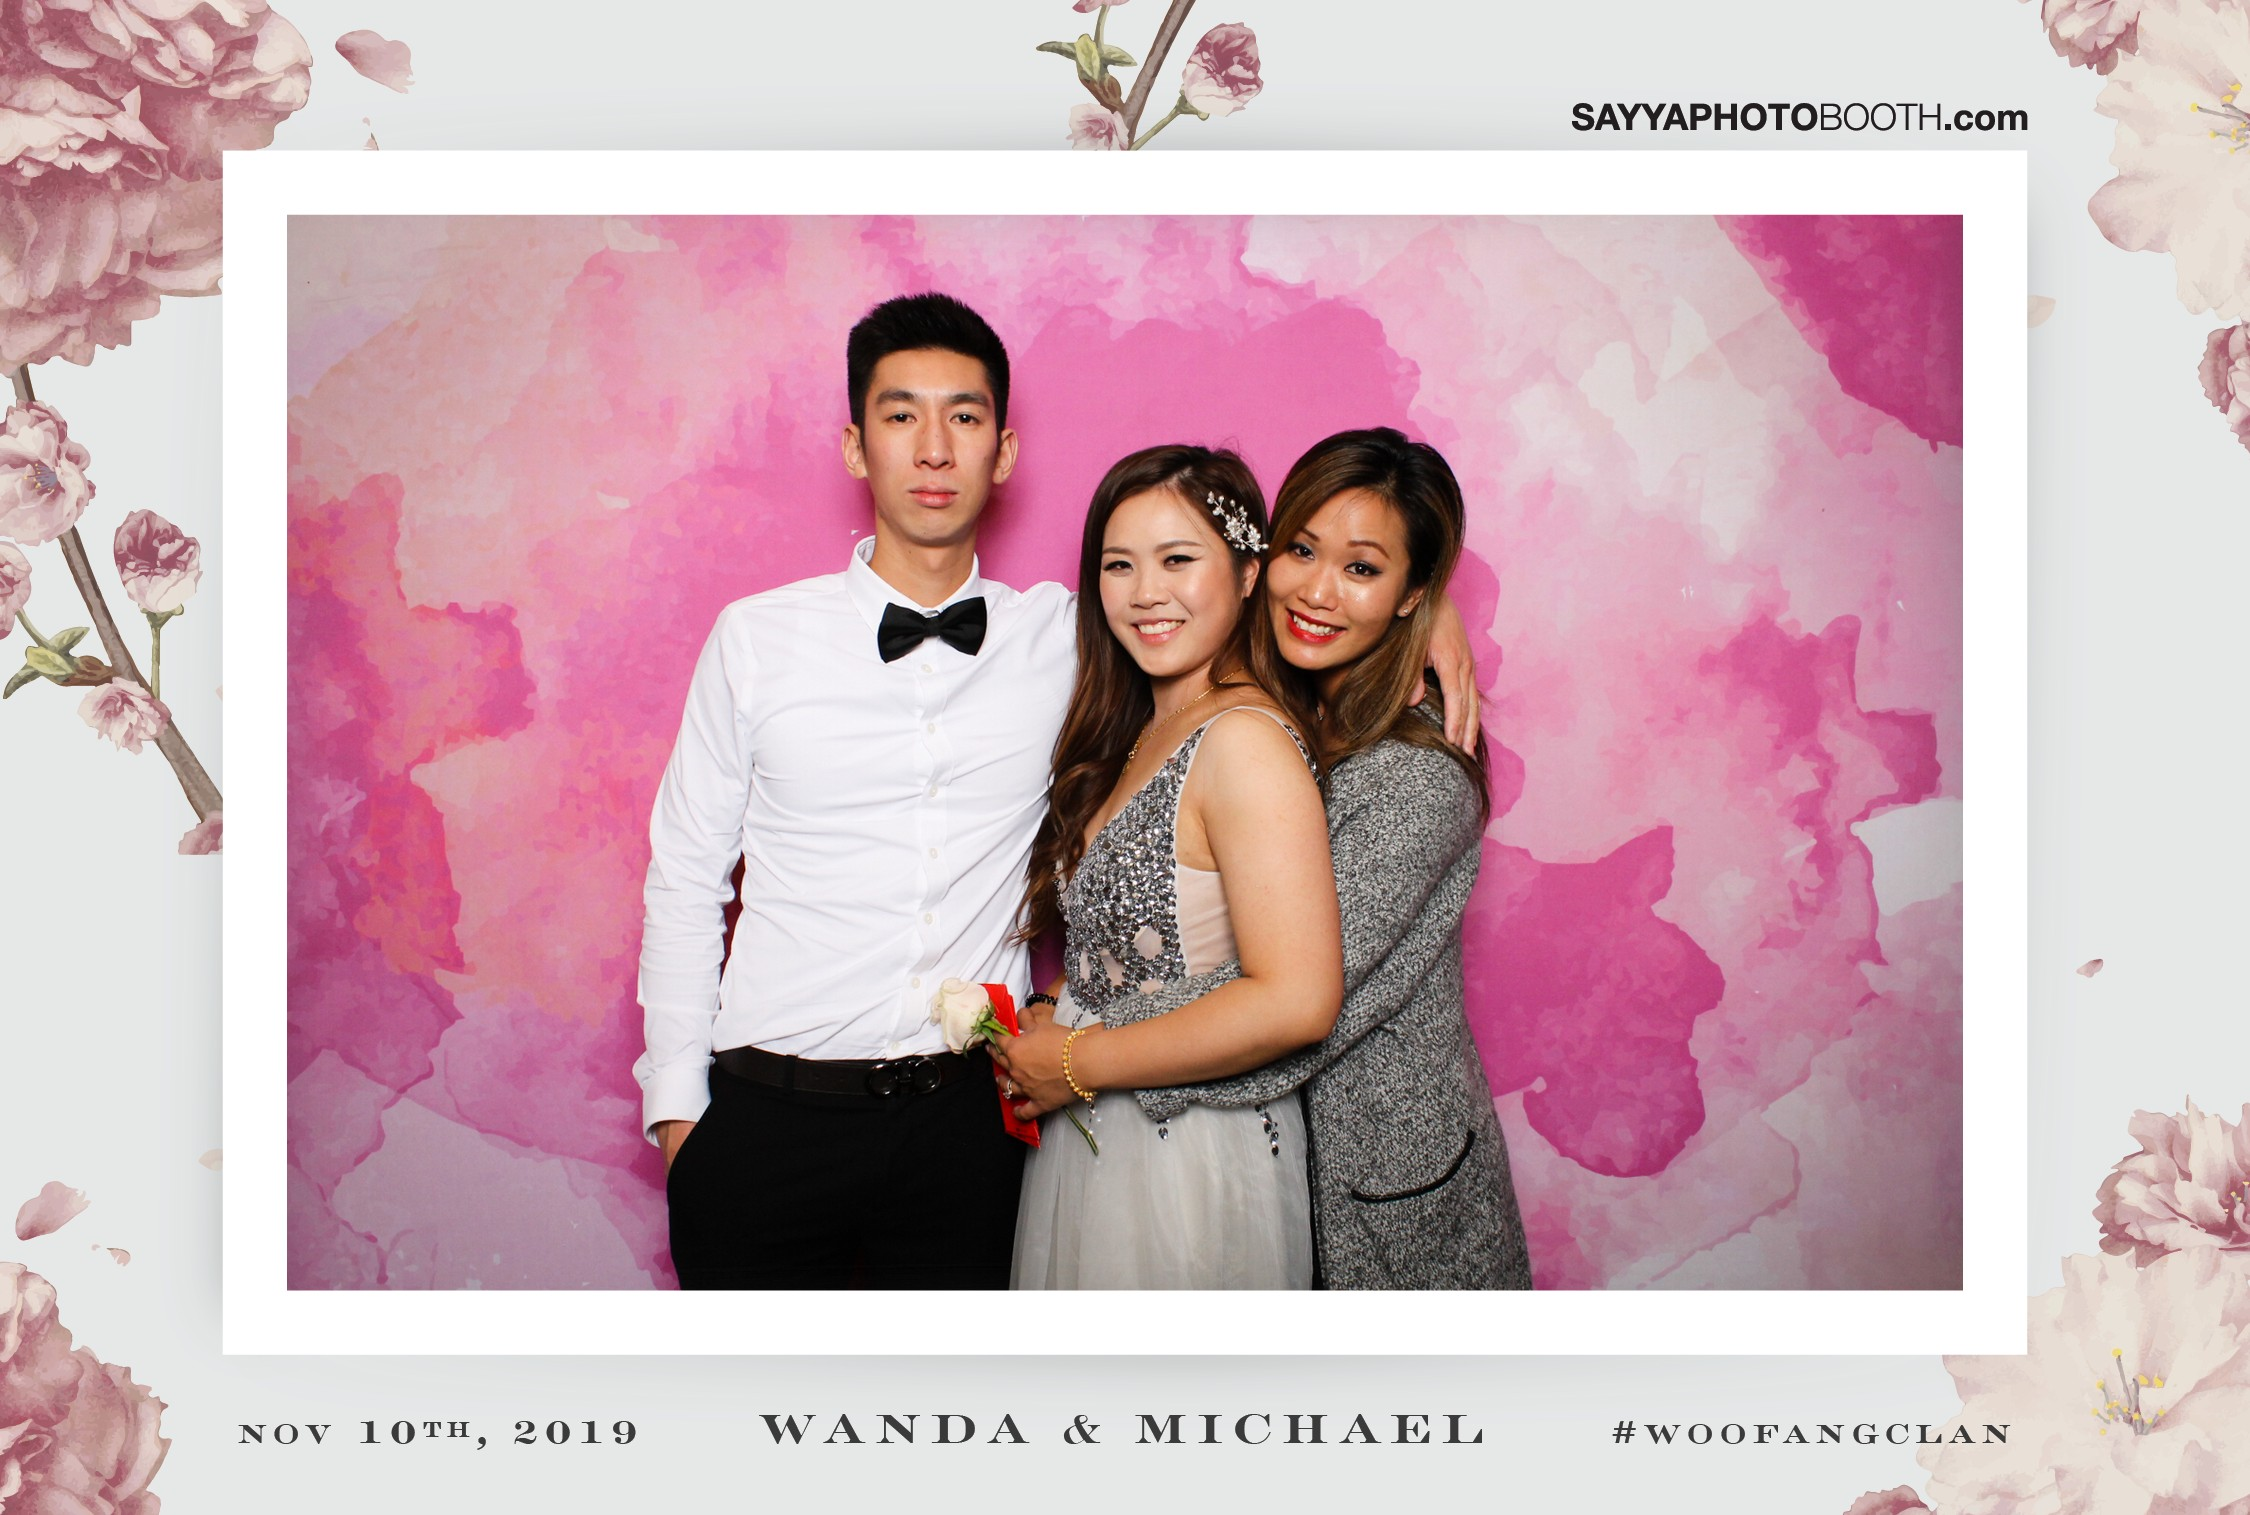 Wanda and Michael's Wedding